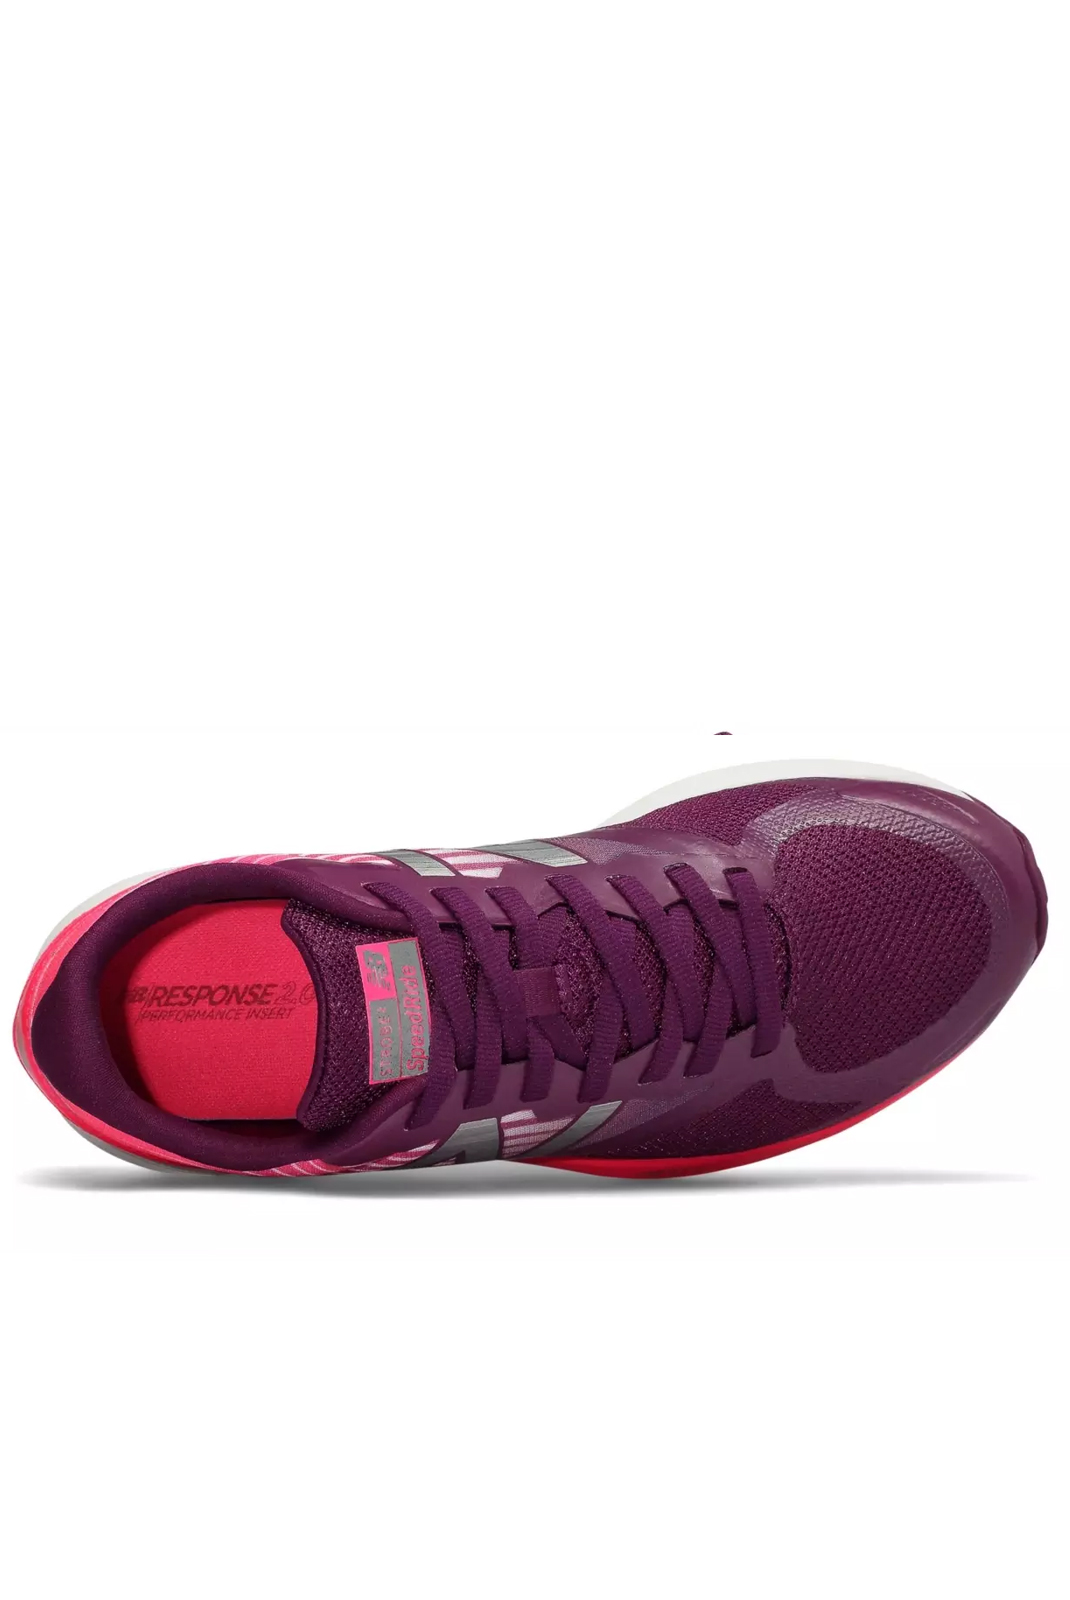 Baskets / Sneakers  New balance WSTRORP2 VIOLET